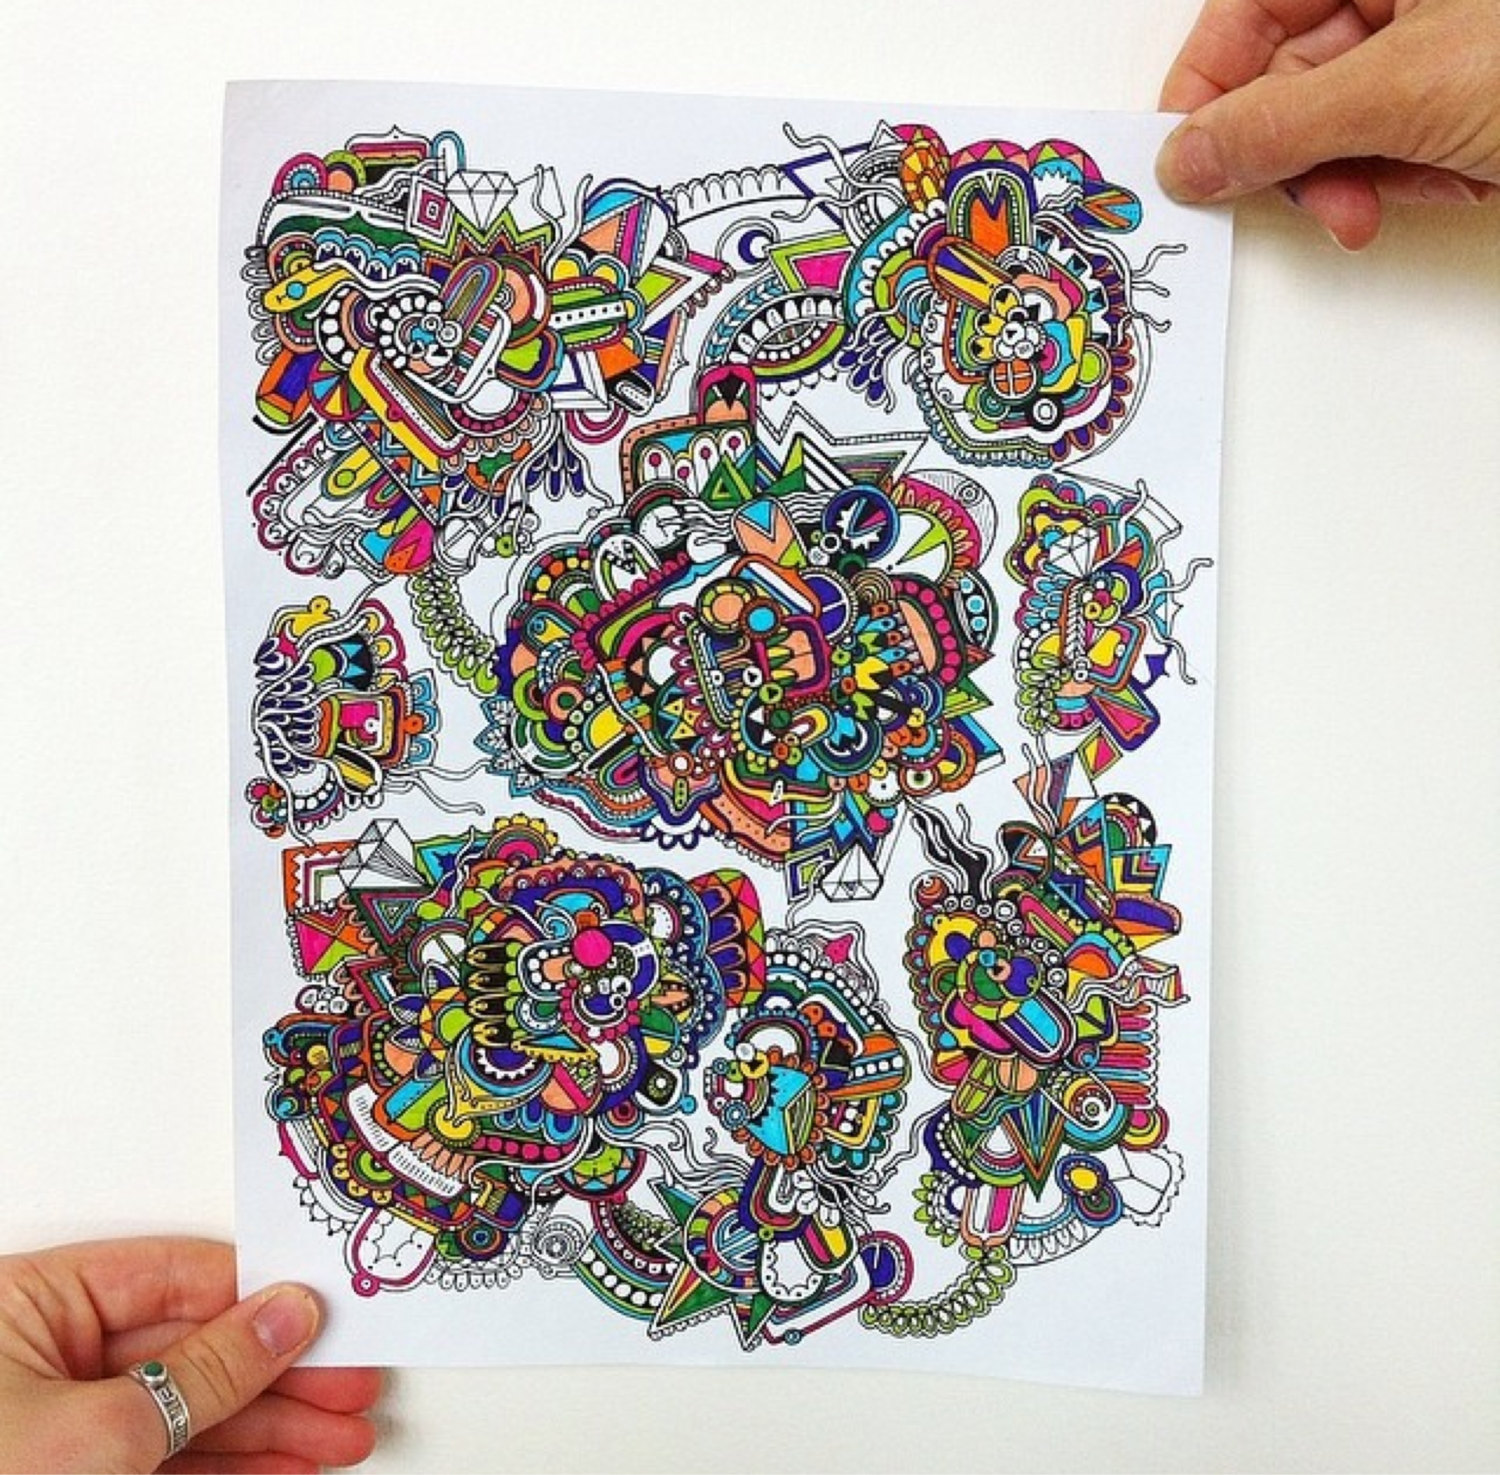 Color zentangles online - Crazy Colorful Drawing Illustration Has A Detailed And Intricate Bright Color Zentangle Design